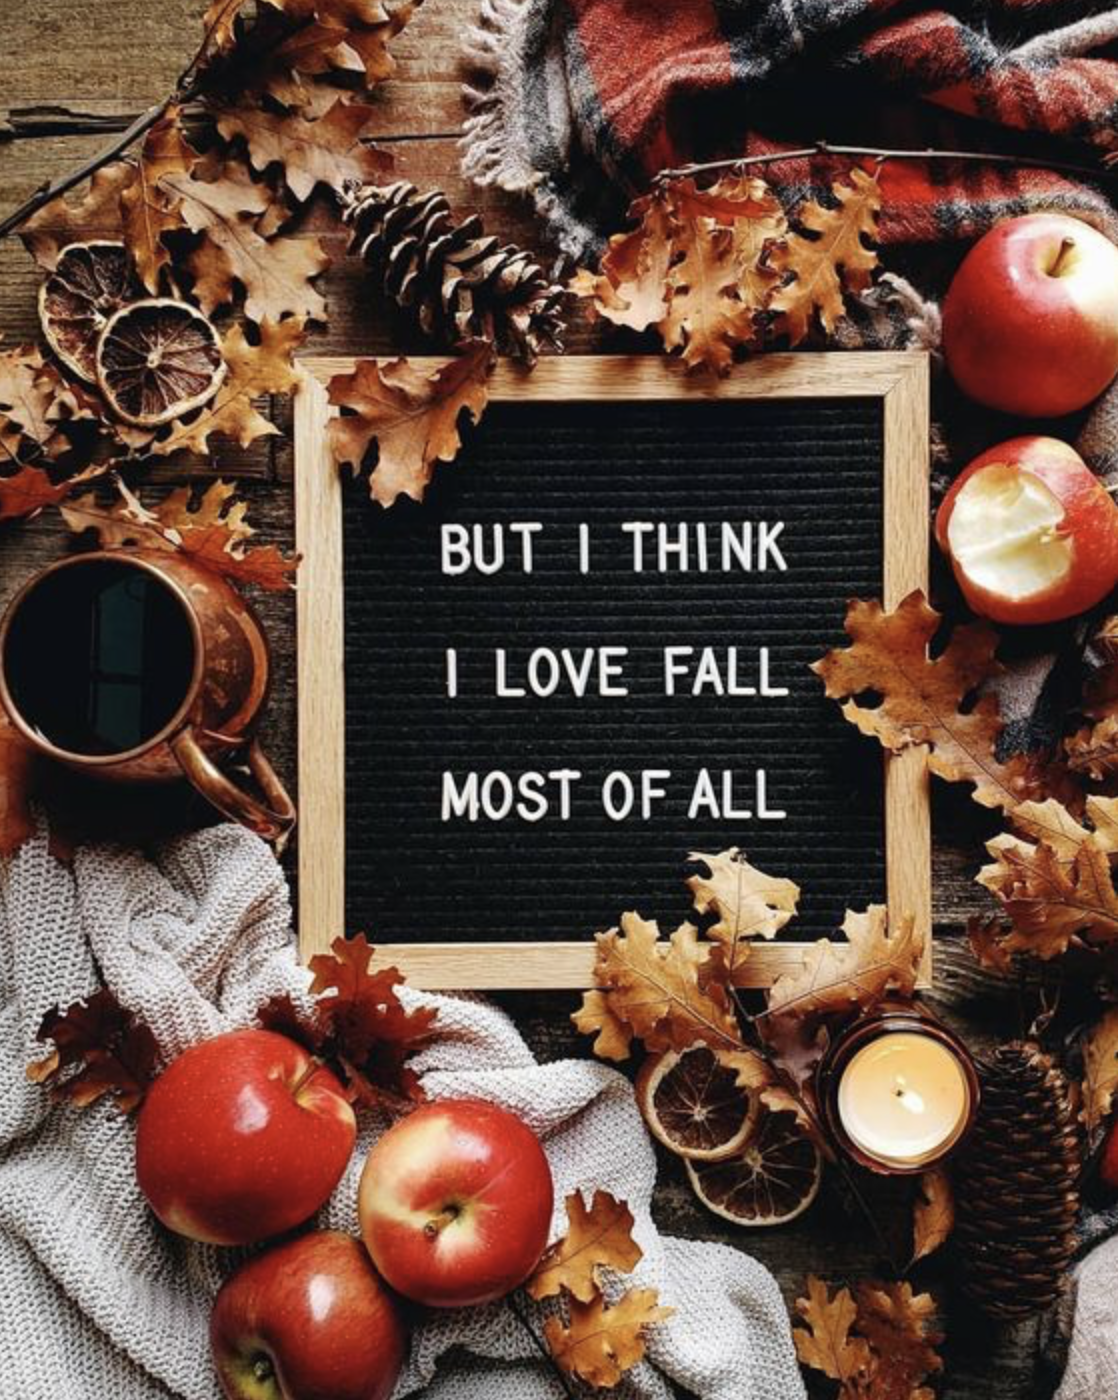 LoveFall